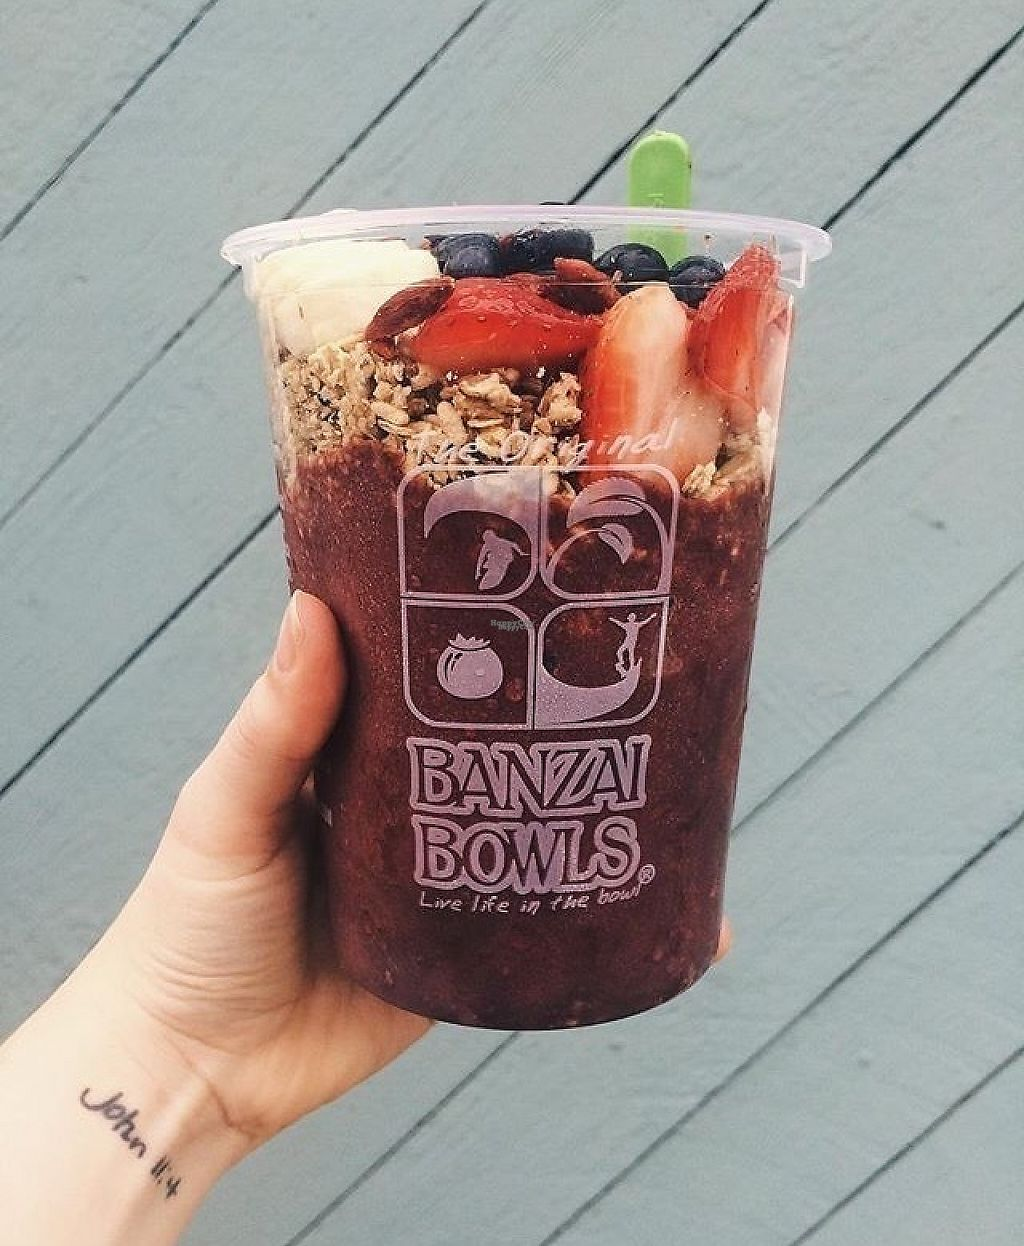 """Photo of Banzai Bowl  by <a href=""""/members/profile/alexriyan"""">alexriyan</a> <br/>Sharks Cove with no honey! <br/> January 24, 2017  - <a href='/contact/abuse/image/78556/215591'>Report</a>"""